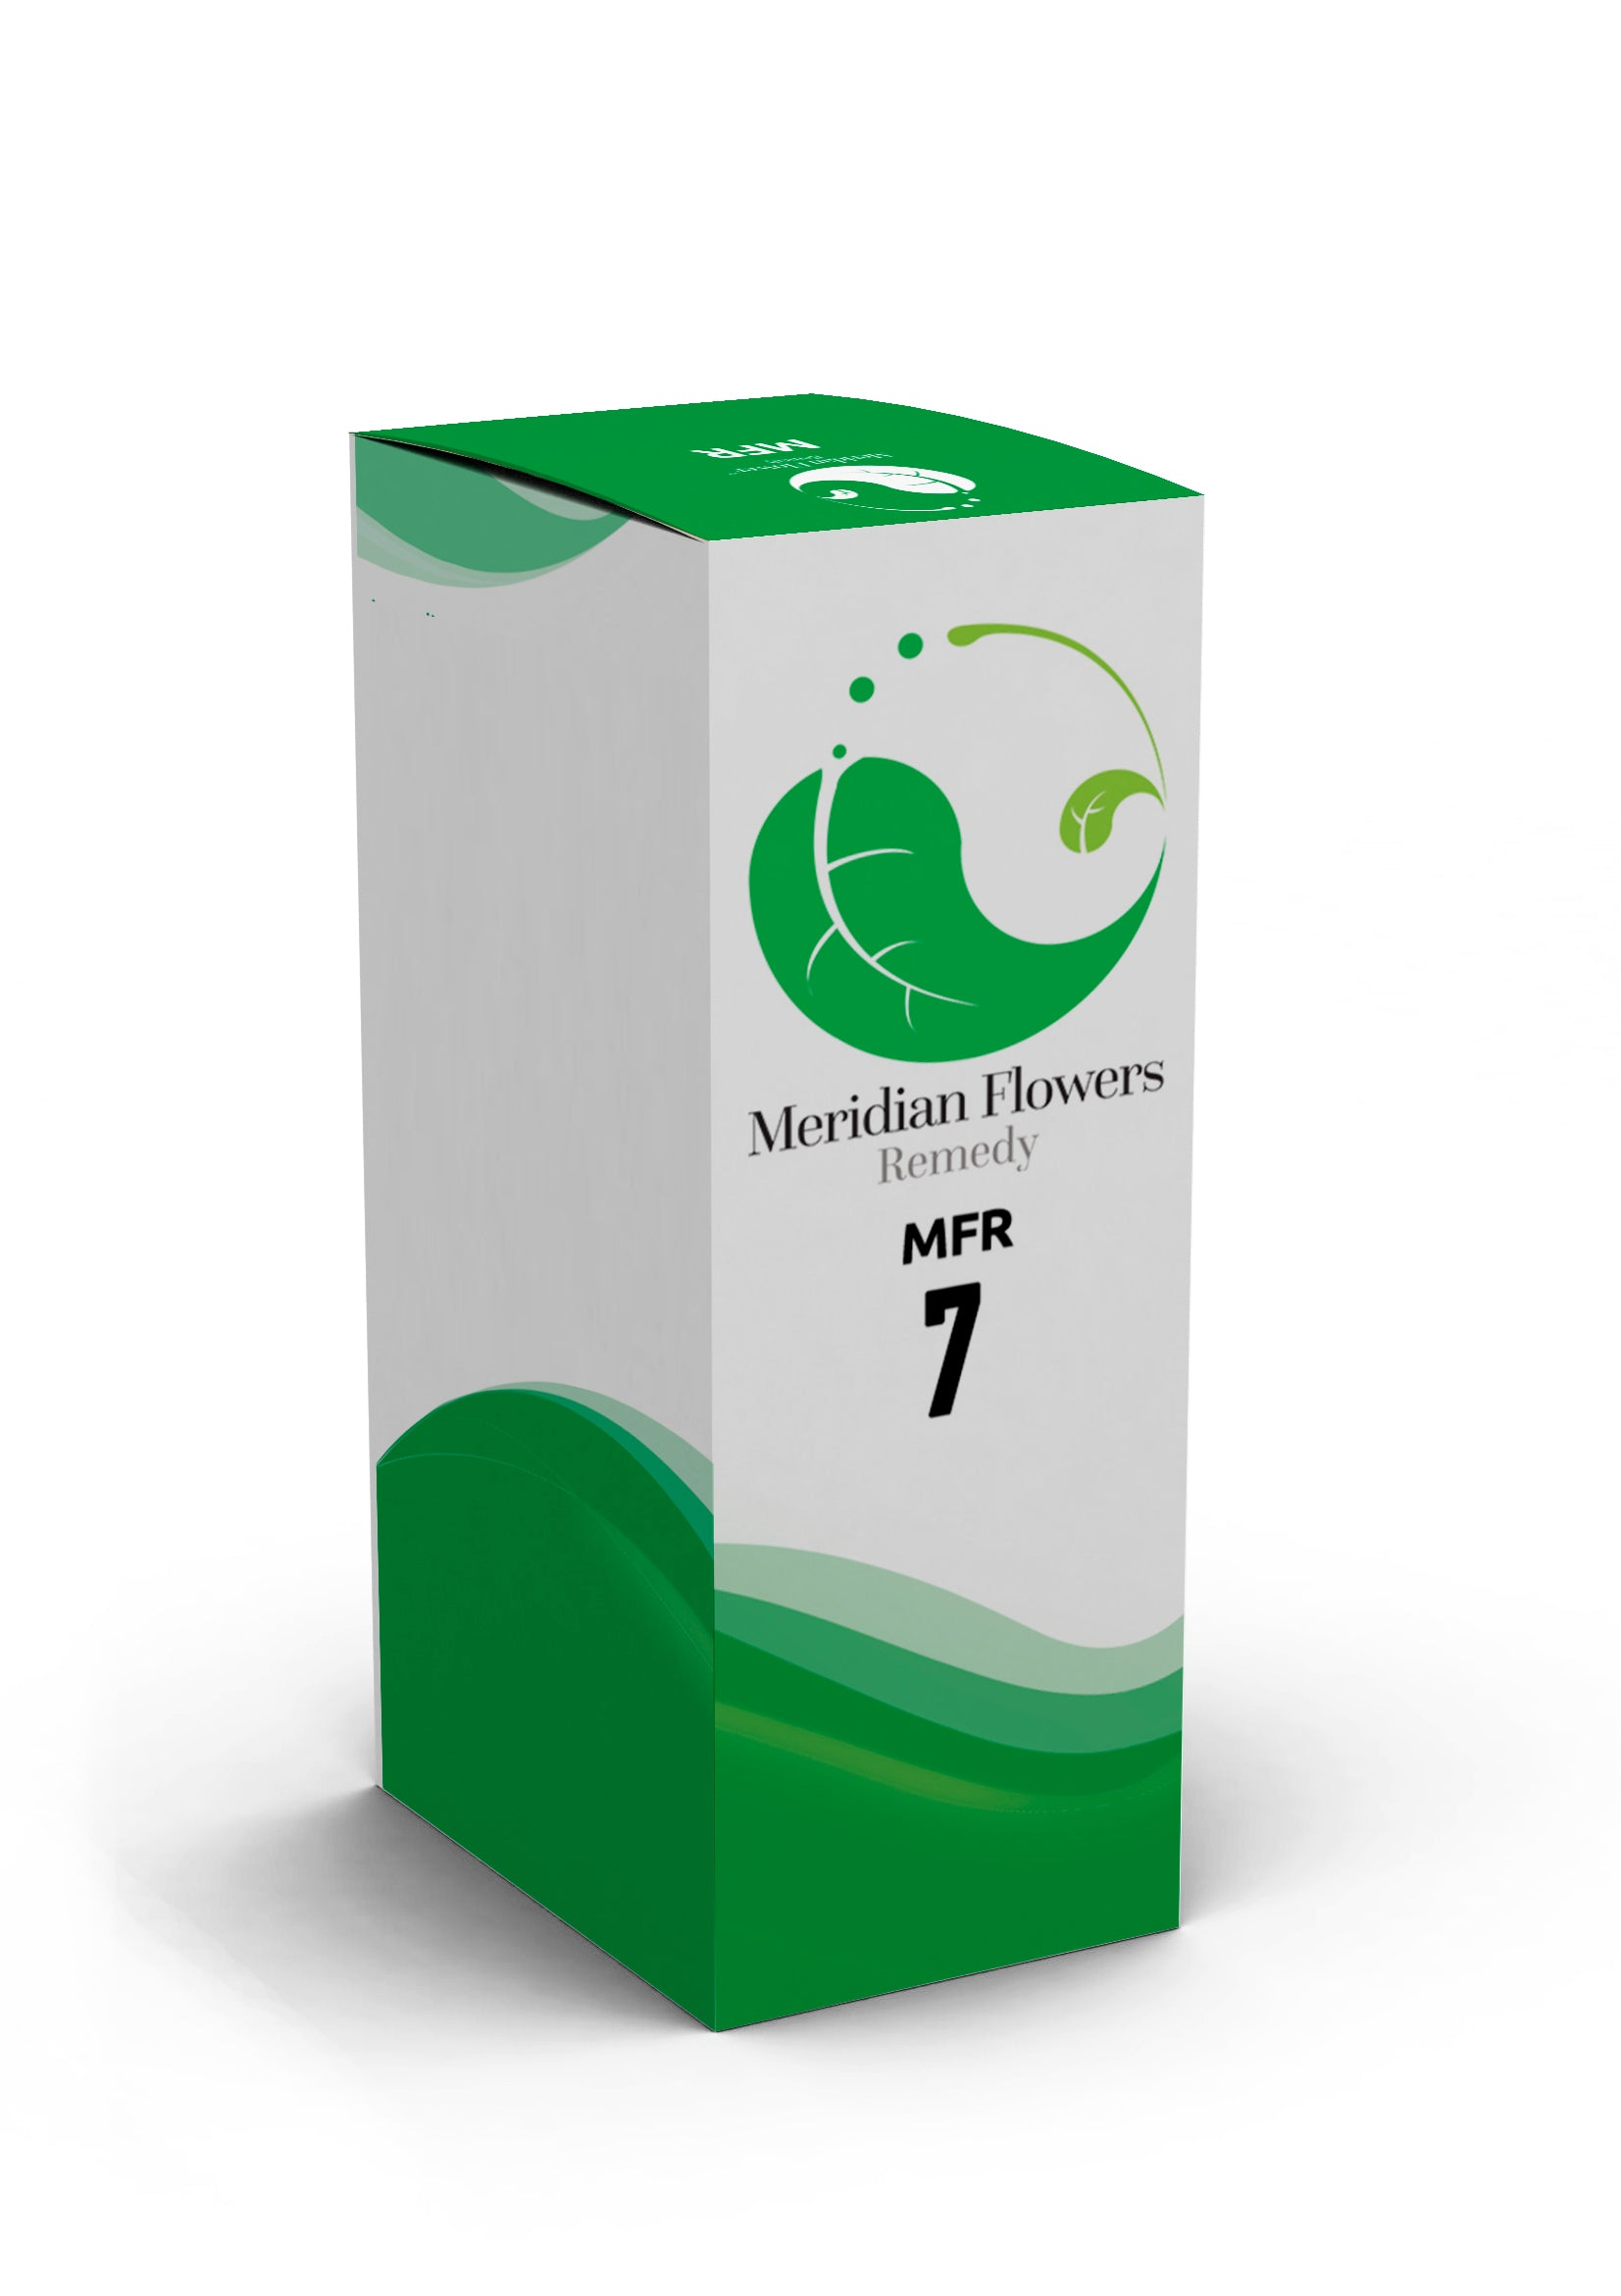 Meridian Flowers Remedy - MFR 7